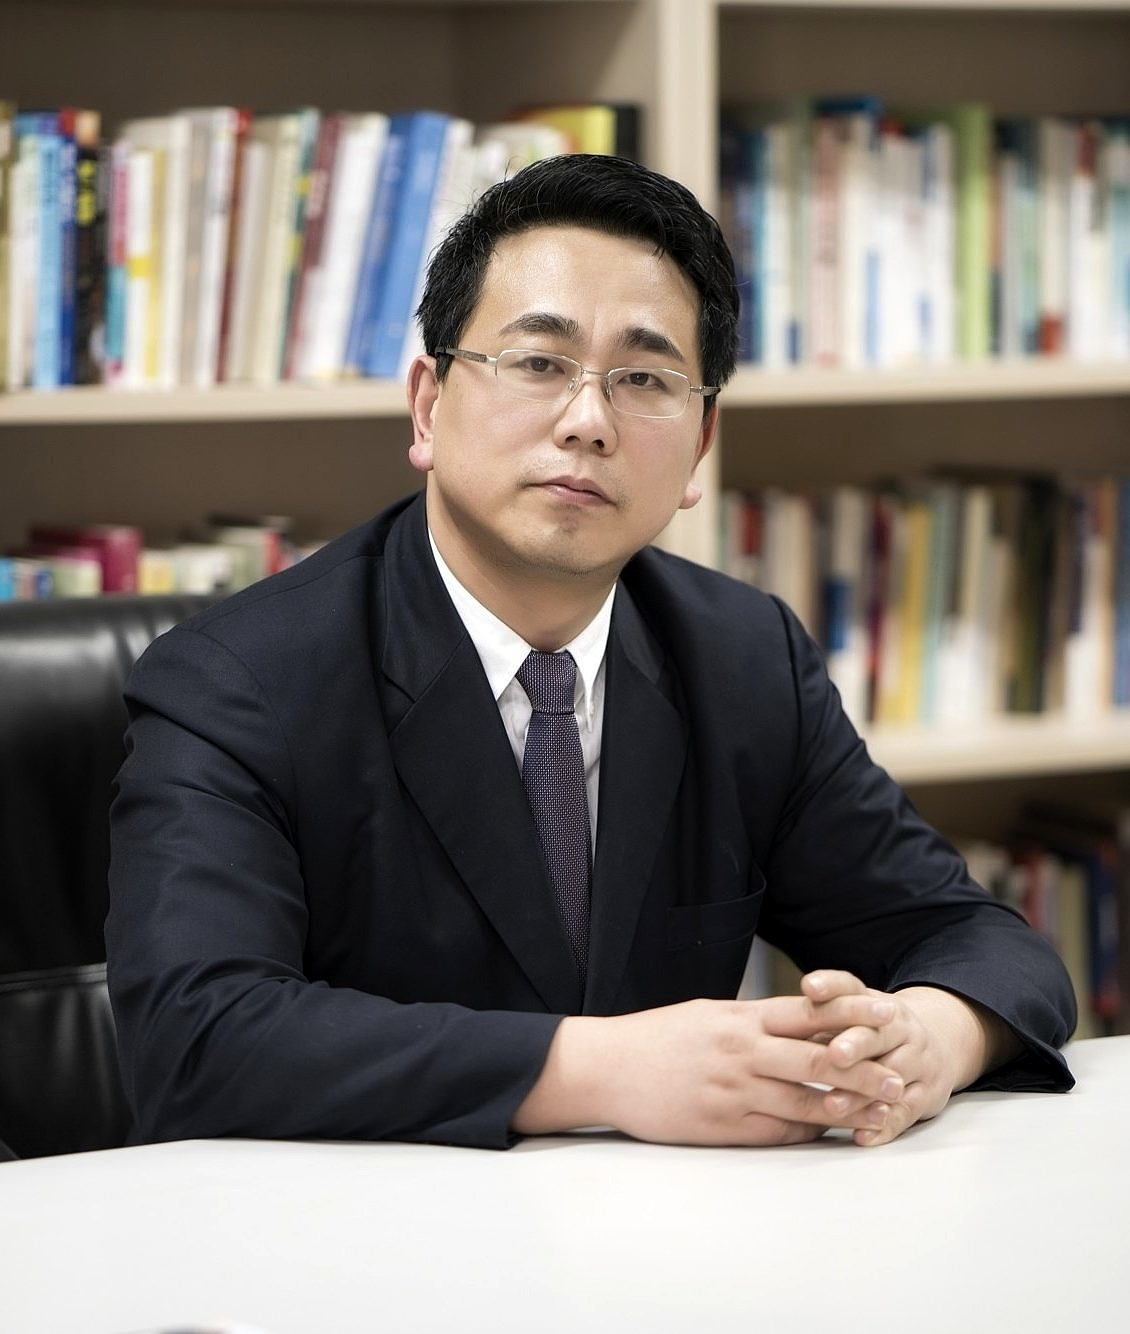 chinas education chief issued - 800×800